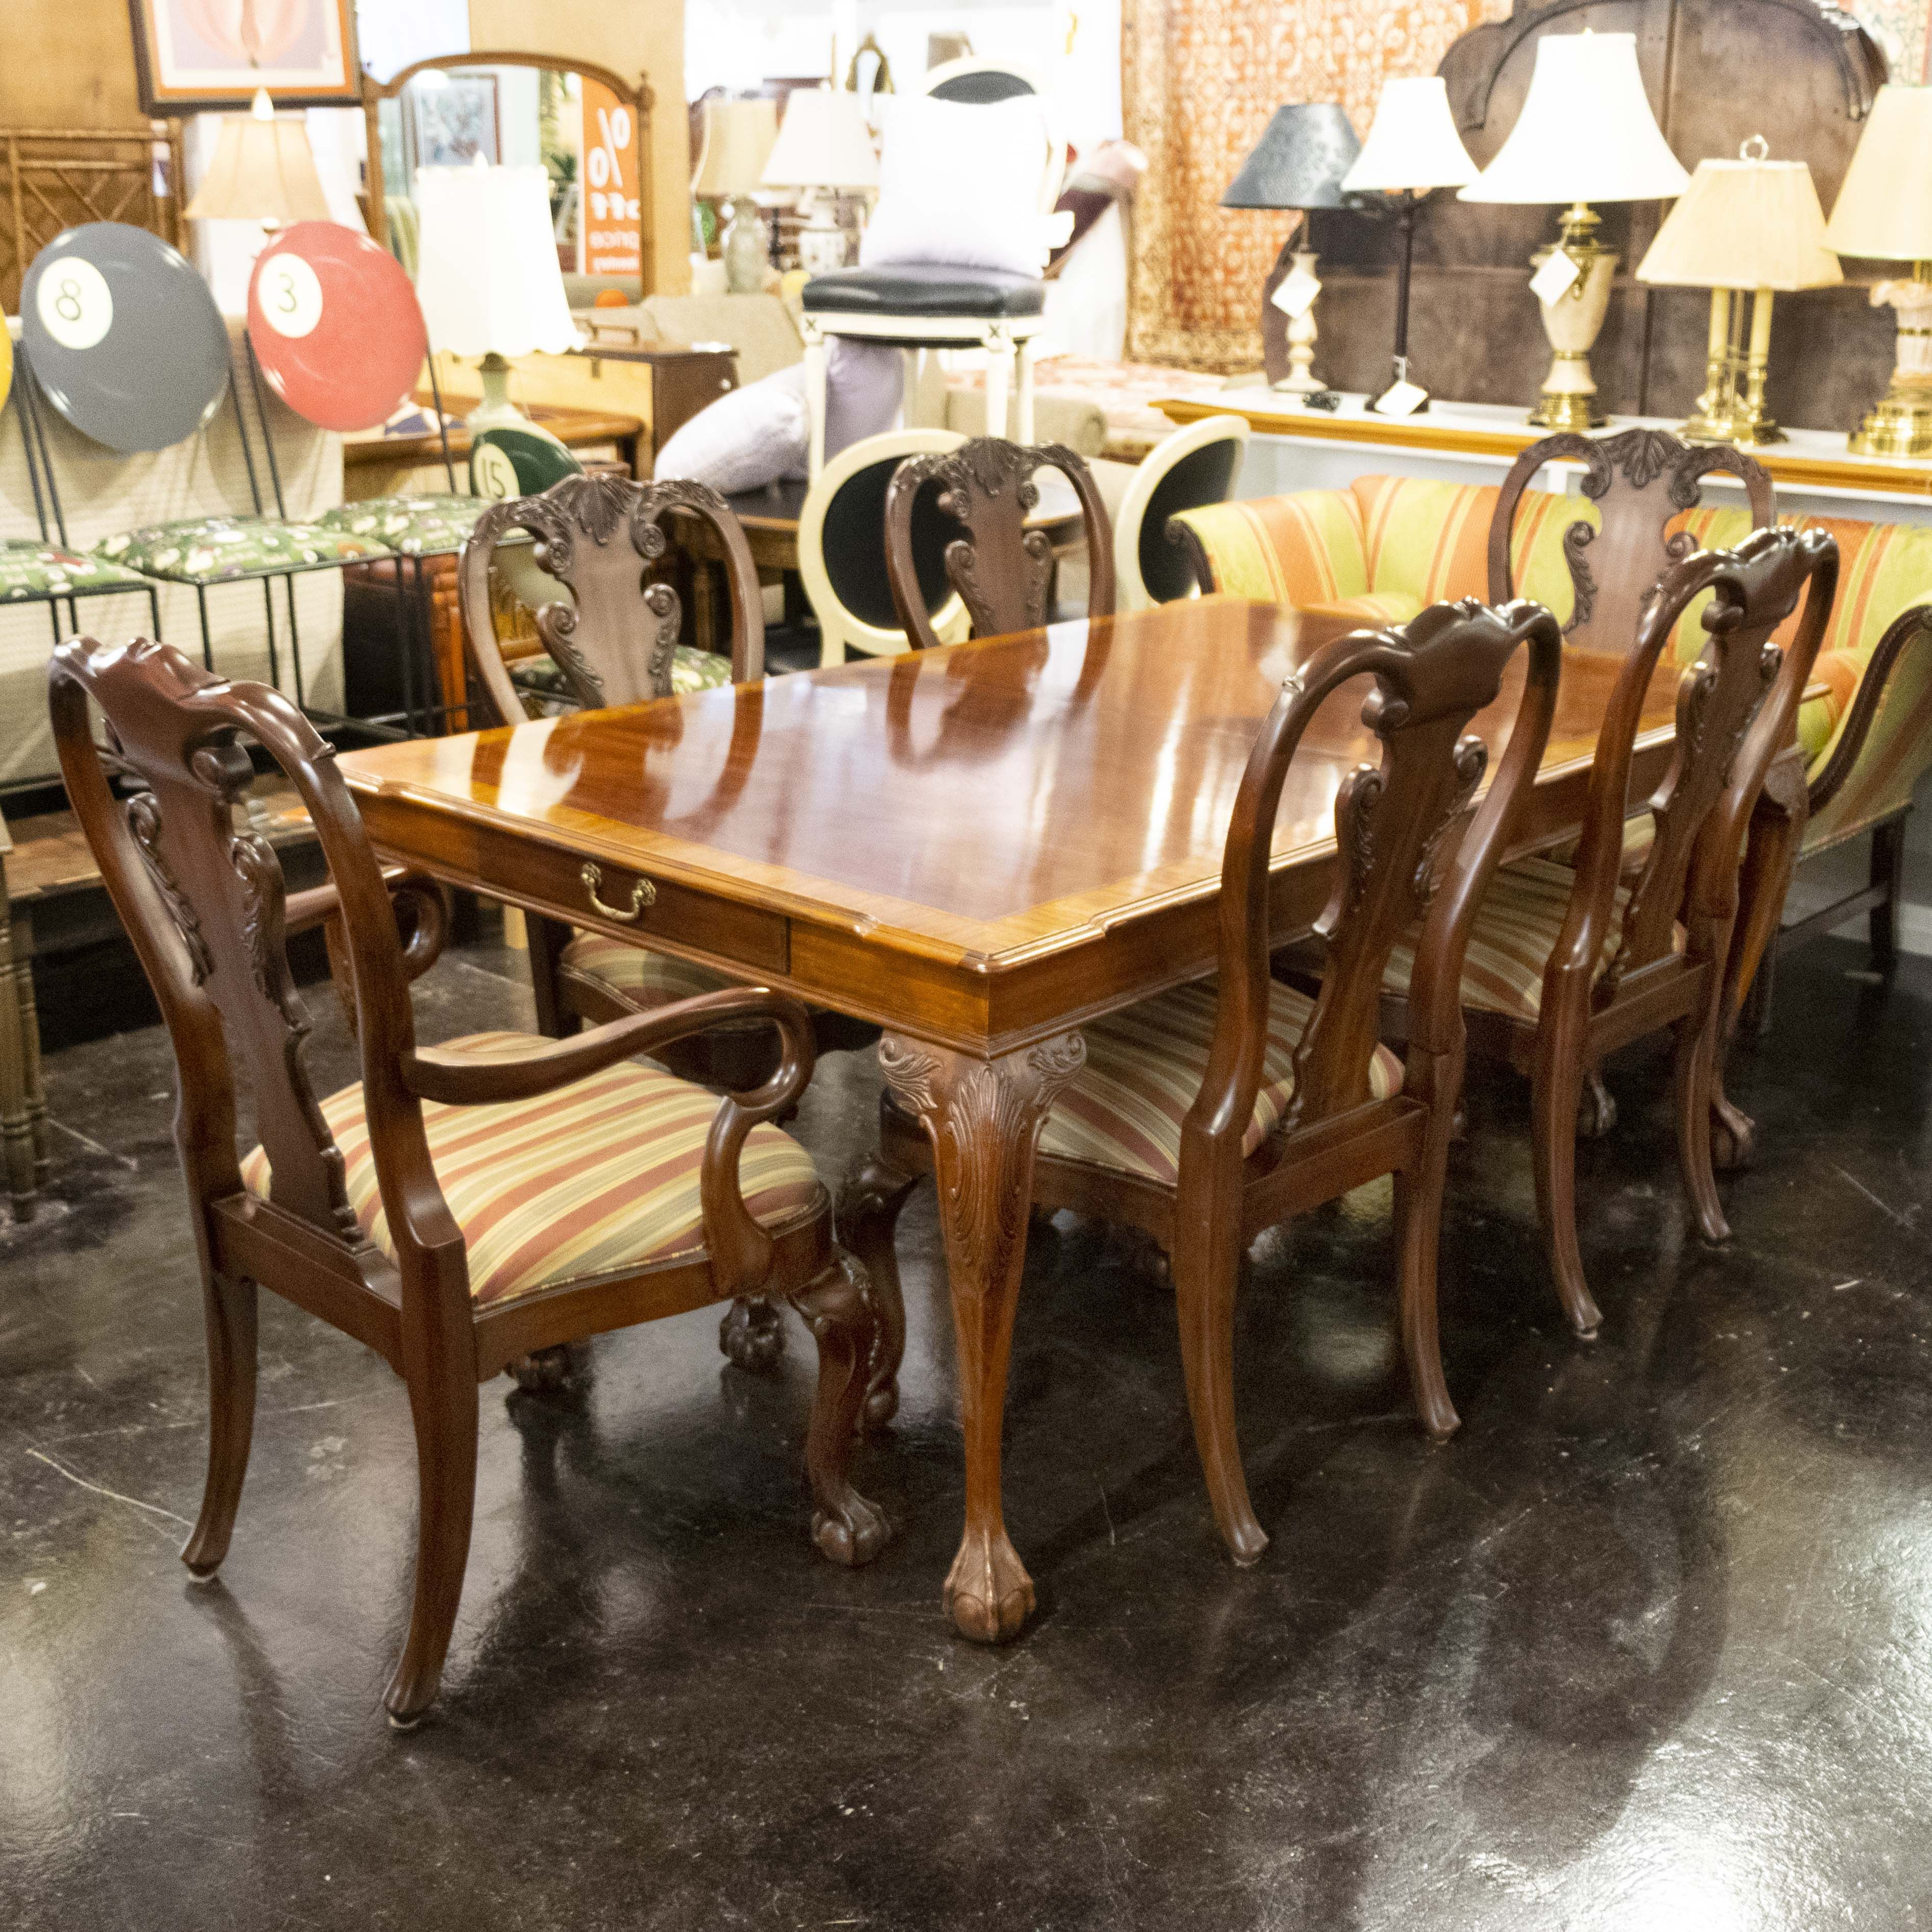 Ethan Allen Presents This Formal Dining Room Set Consisting Of An